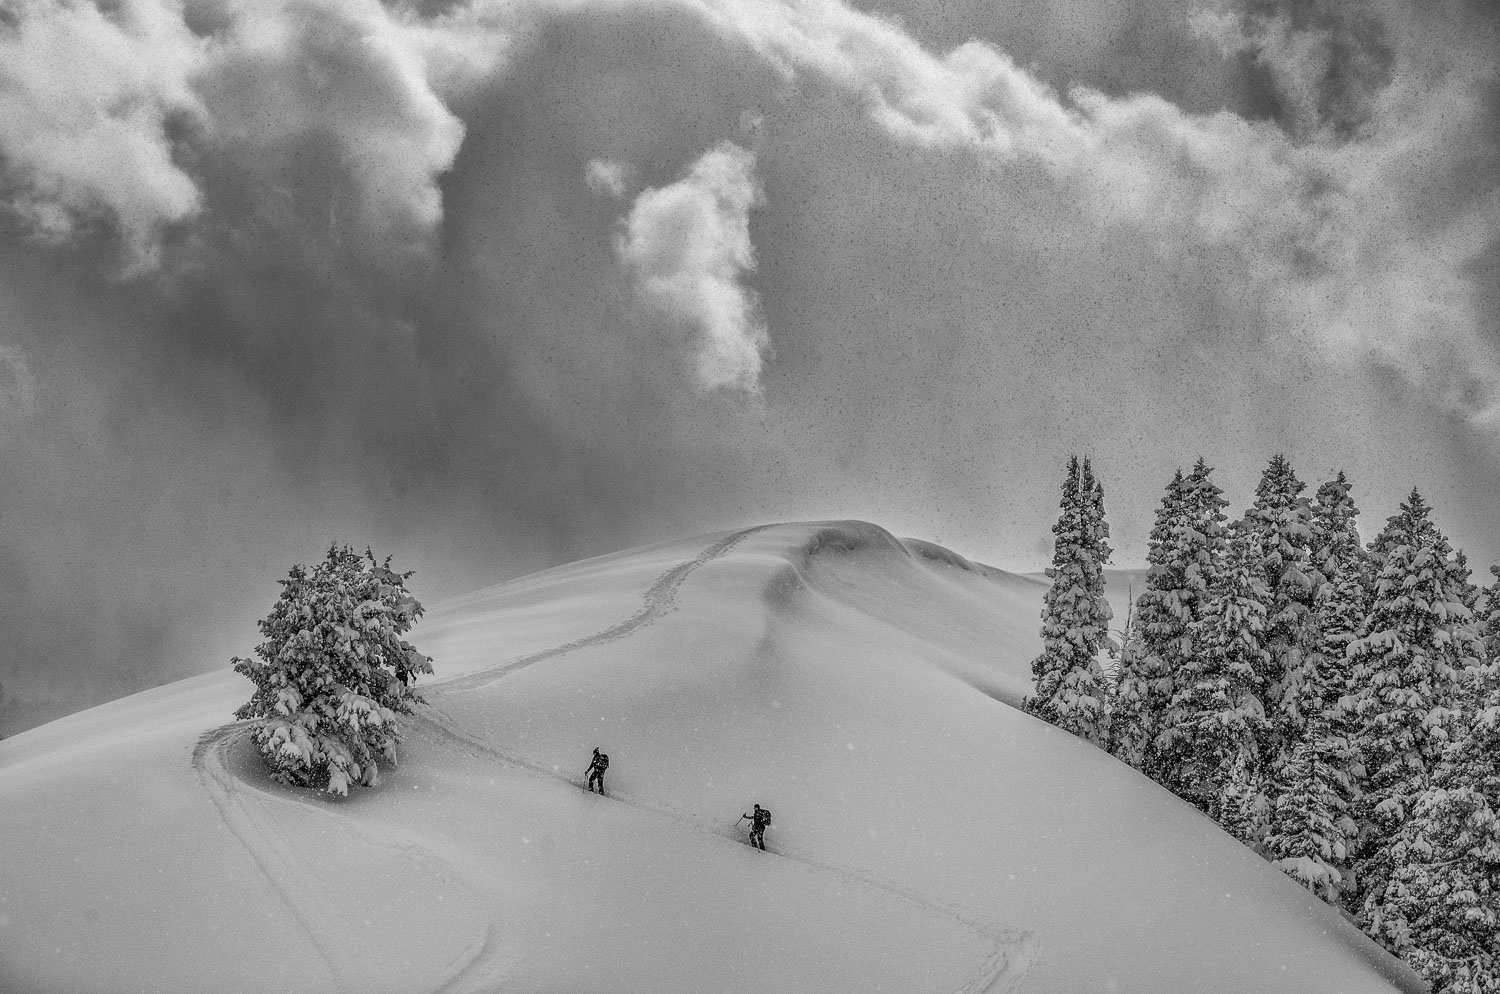 Backcountry Skiers in B & W climbing for Fresh Powder, Big Cotto